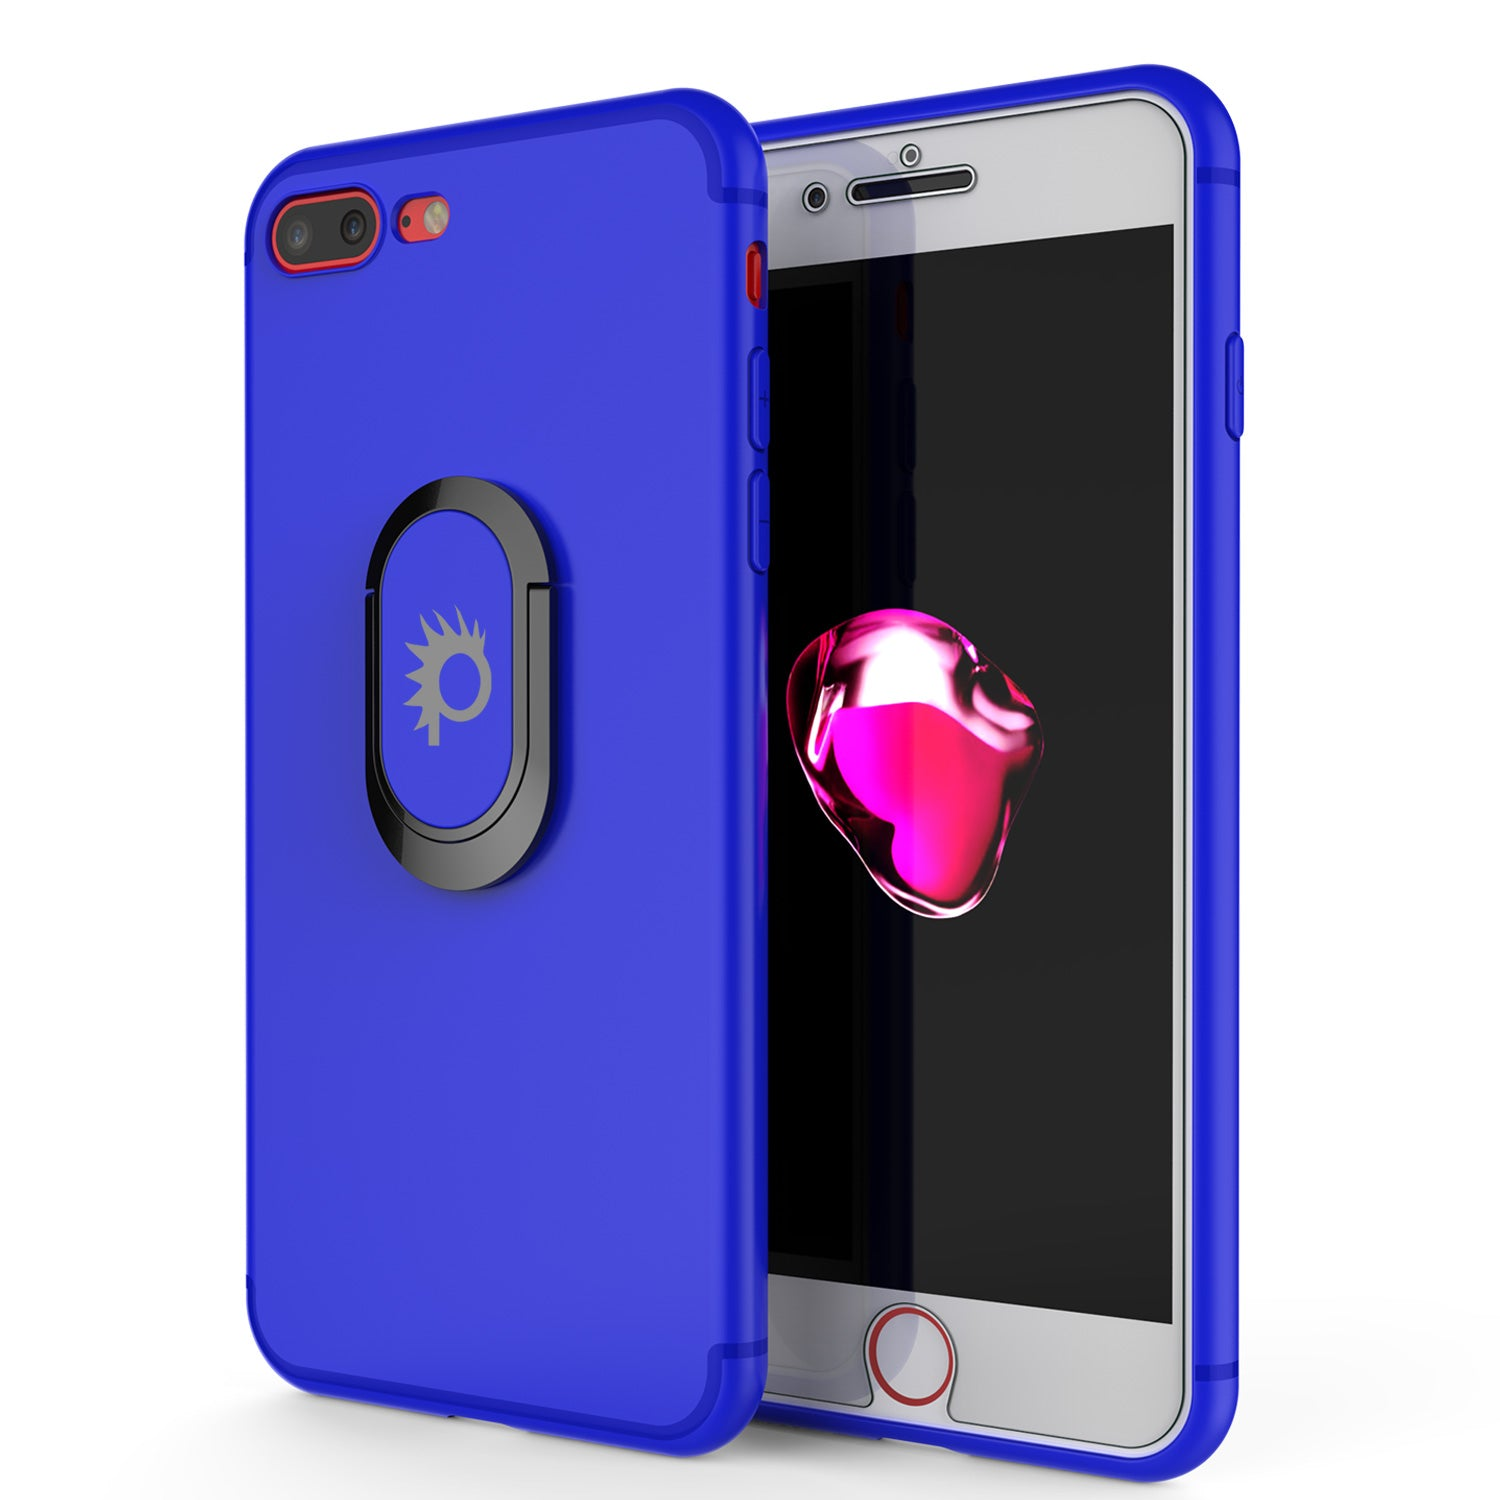 iPhone 8 PLUS Case, Punkcase Magnetix Protective TPU Cover W/ Kickstand, Tempered Glass Screen Protector [Blue]